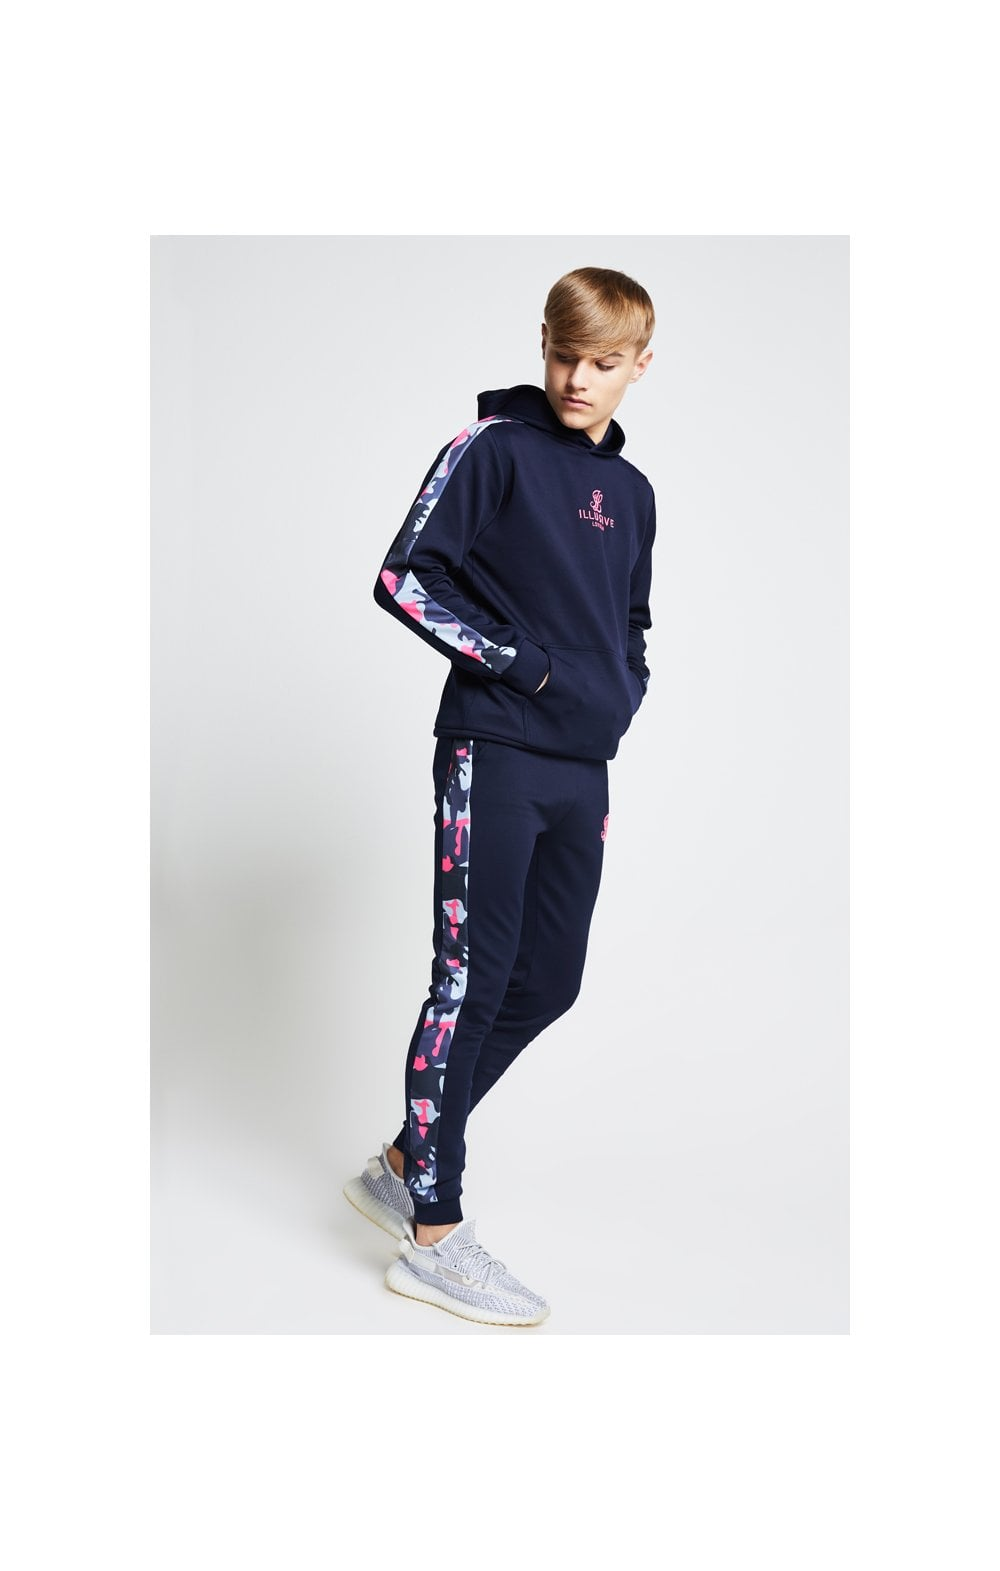 Illusive London Fade Panel Cuffed Joggers – Navy & Neon Pink Camo (4)